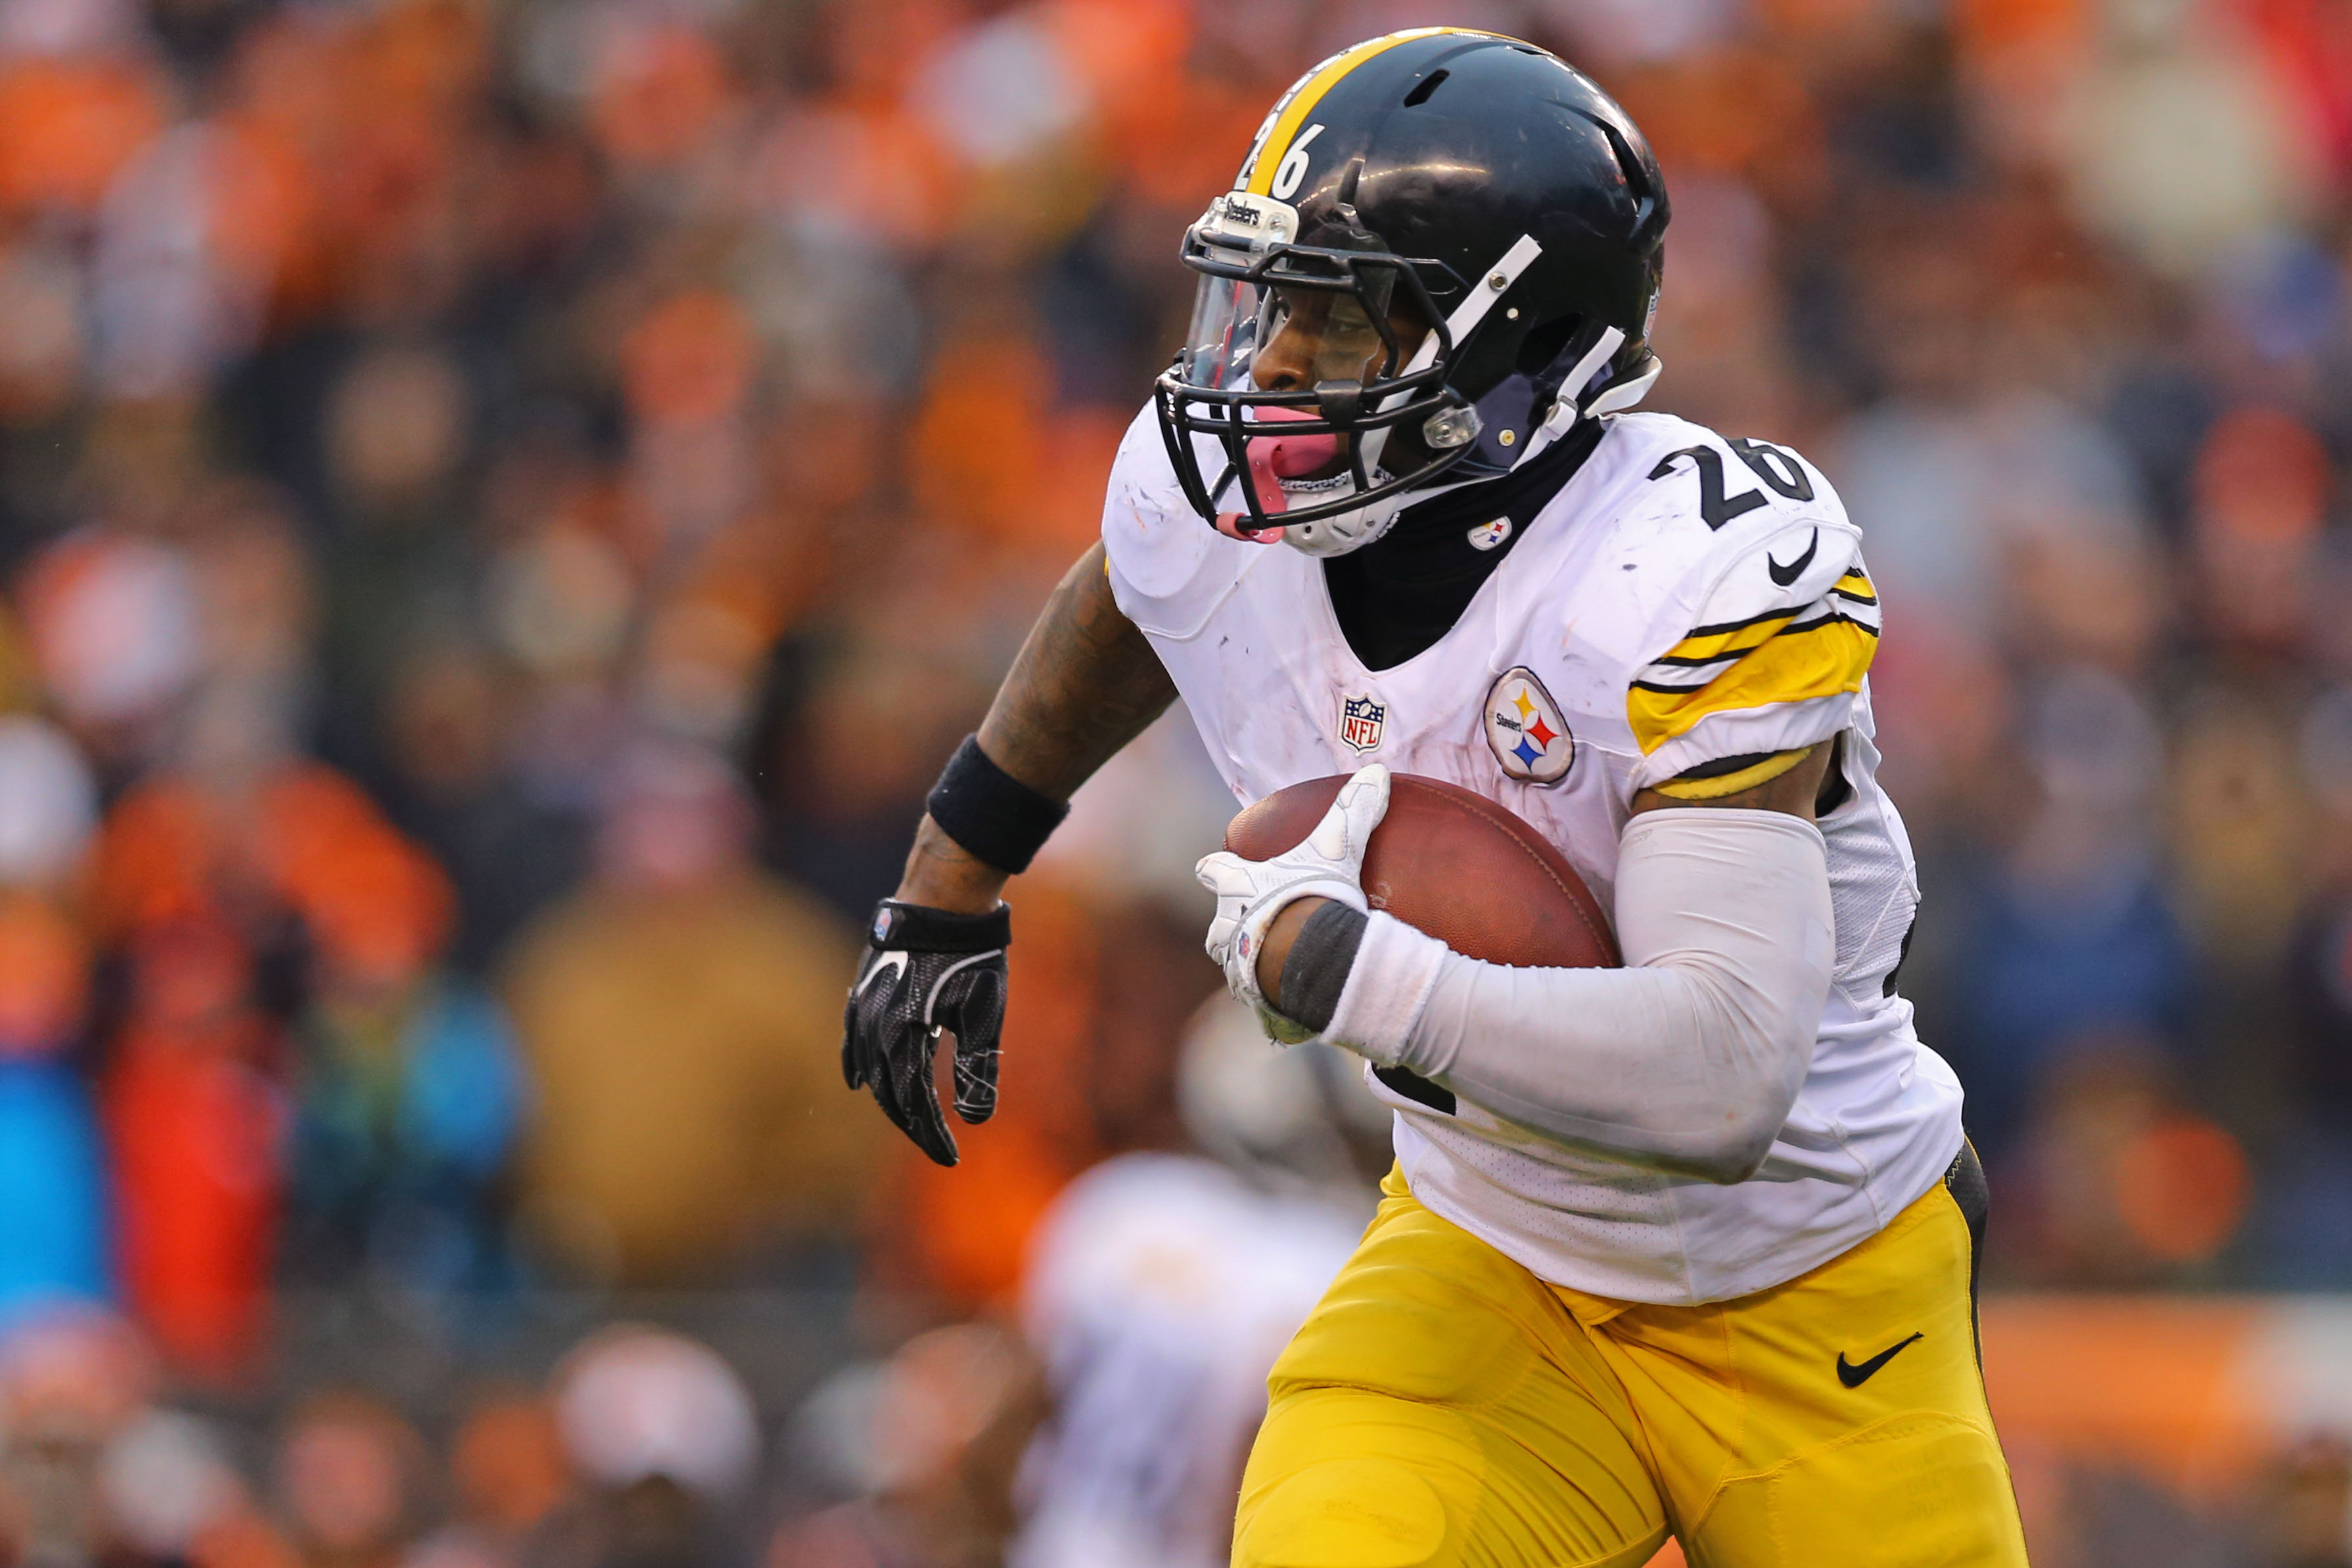 NFL: Pittsburgh Steelers at Cincinnati Bengals